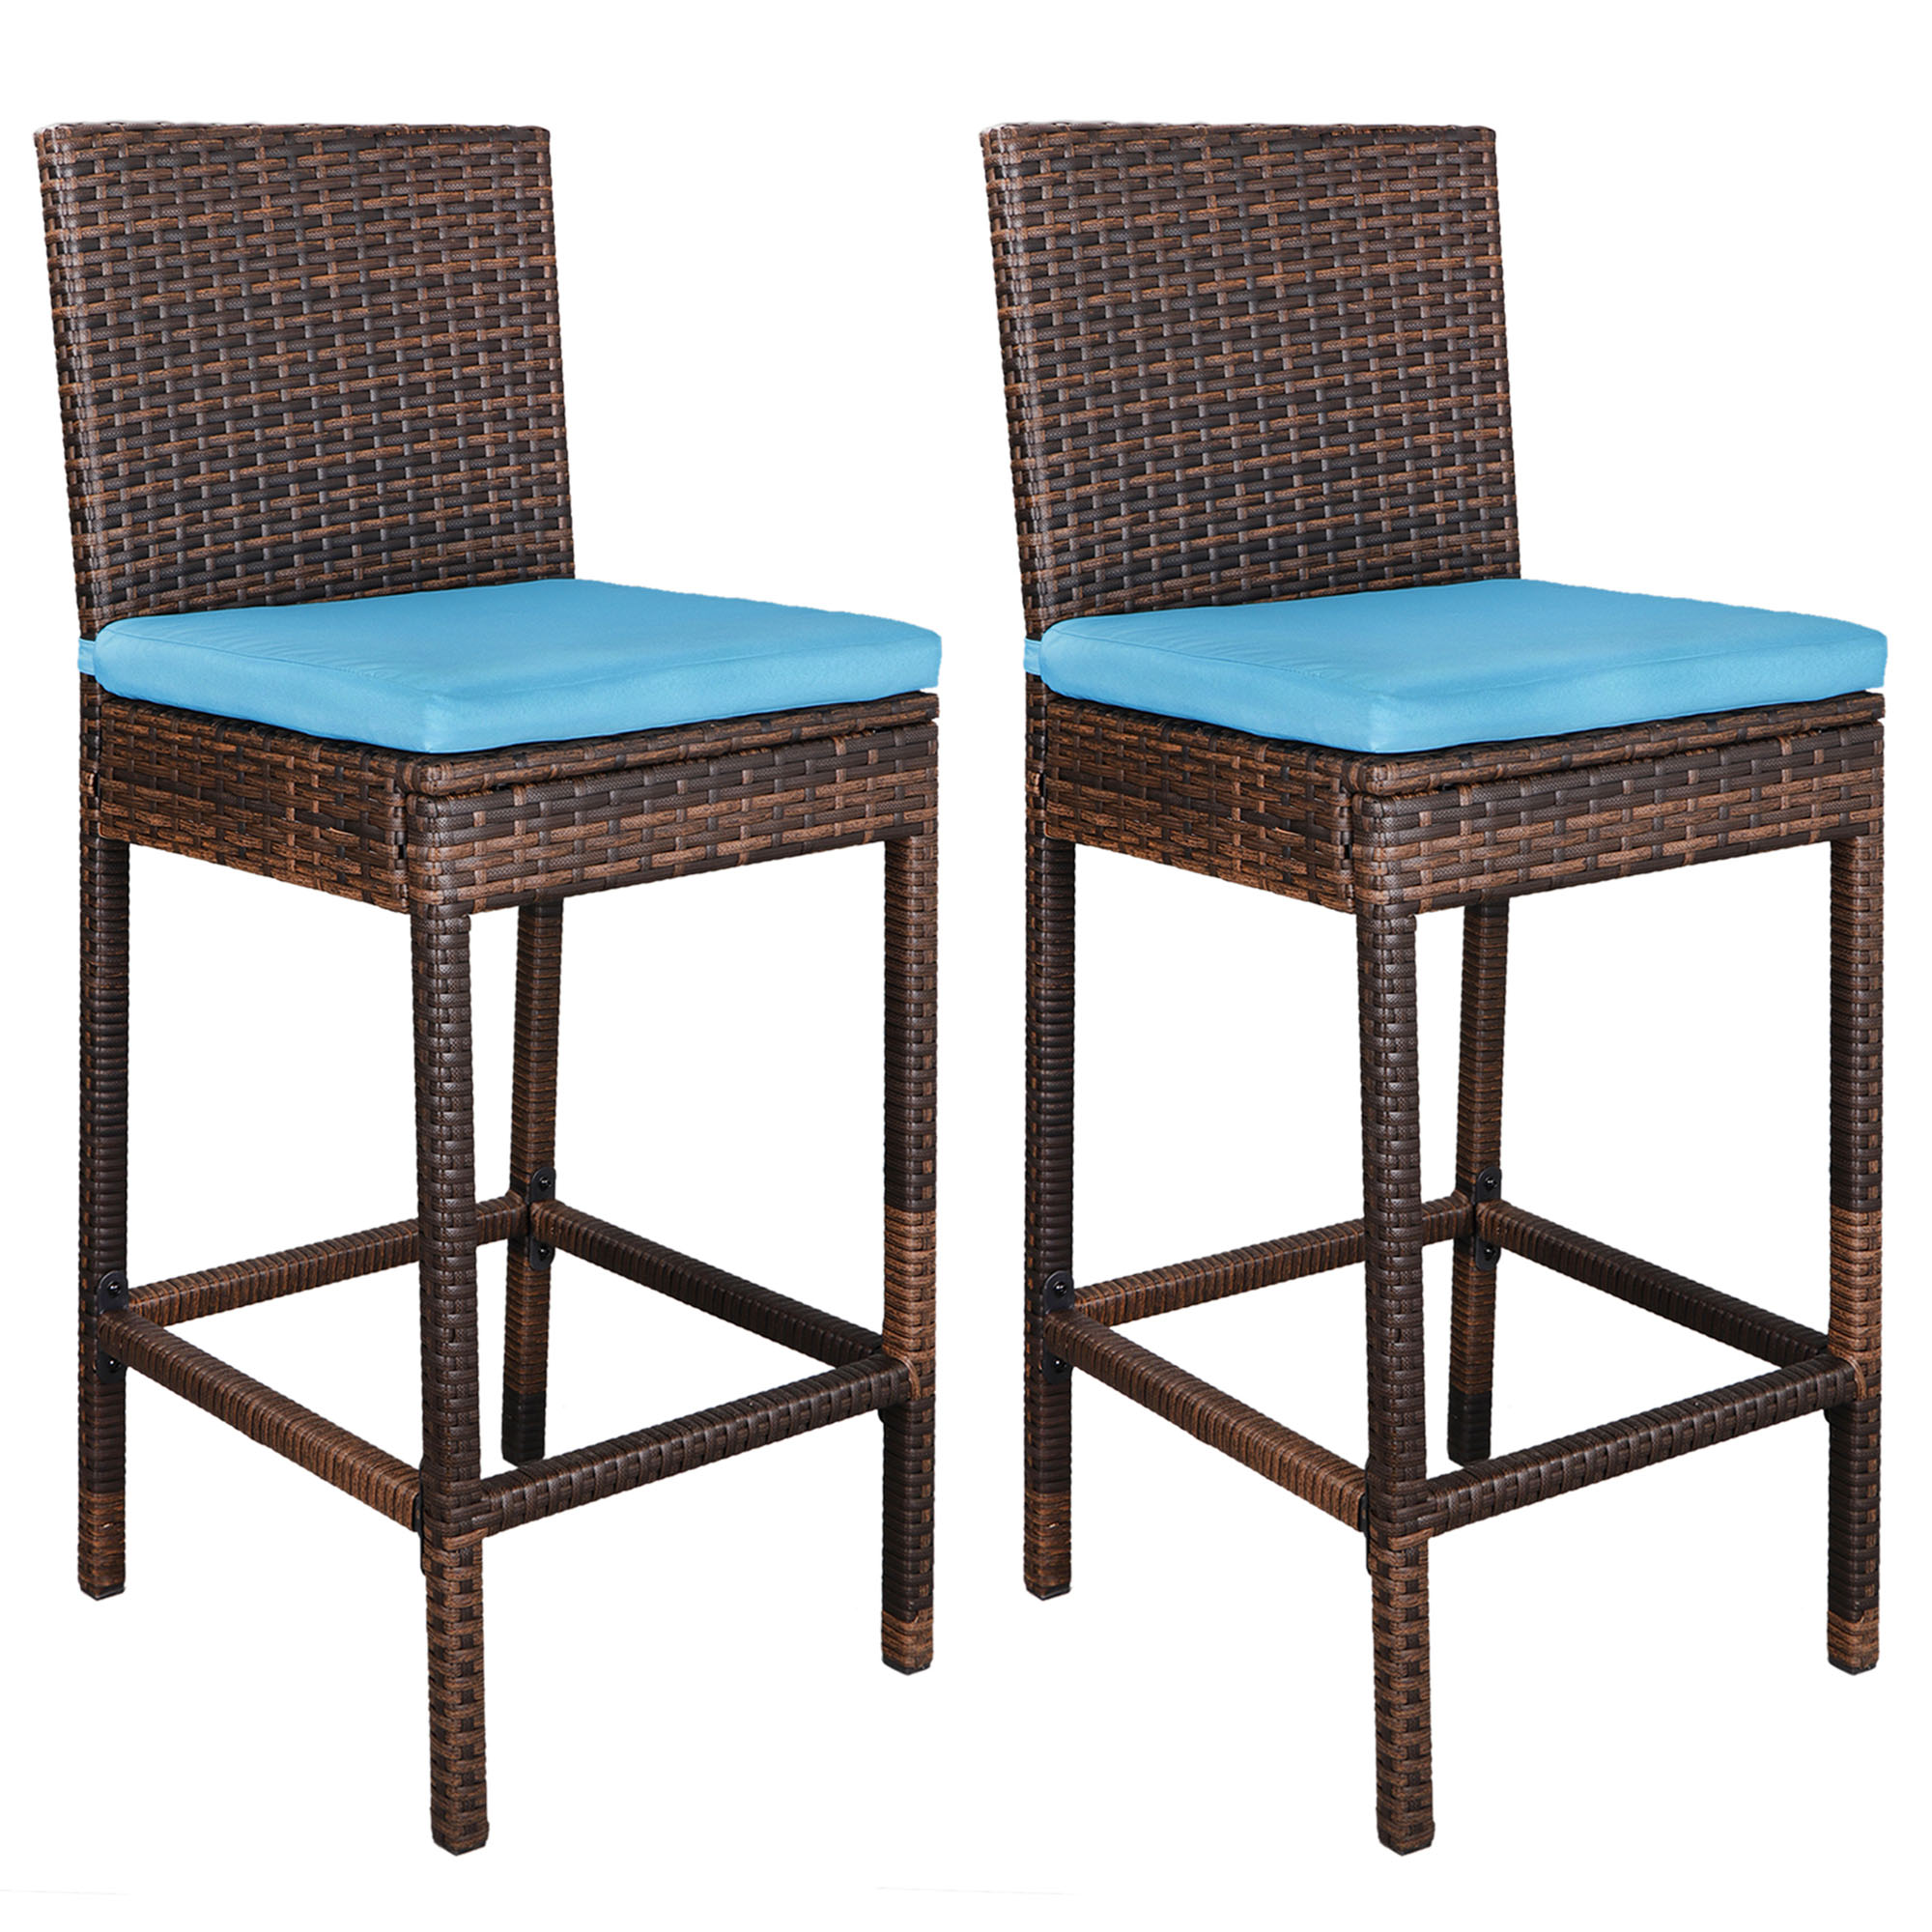 Zeny Patio Wicker Bar Stools Set Of Two All Weather Outdoor Indoor Freestanding Chair With Soft Detachable Blue Cushion Walmart Com Walmart Com